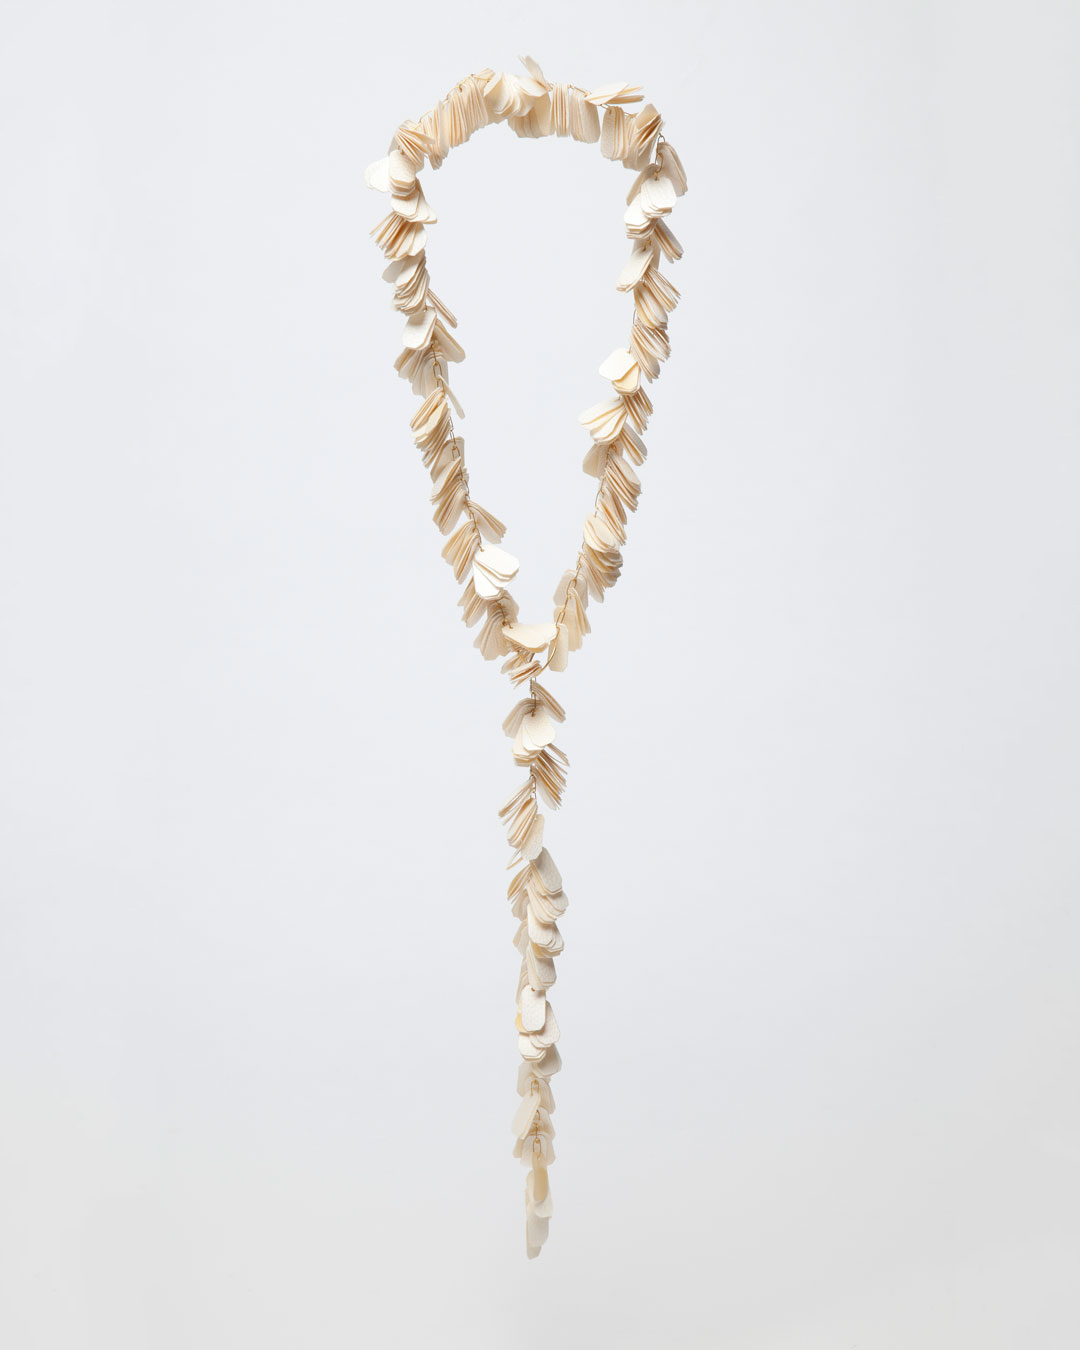 Annamaria Leiste, Vor-Zunamen (First Name-Last Name), 2017, necklace; parchment, gold, 390 x 110 x 15 mm, €1950